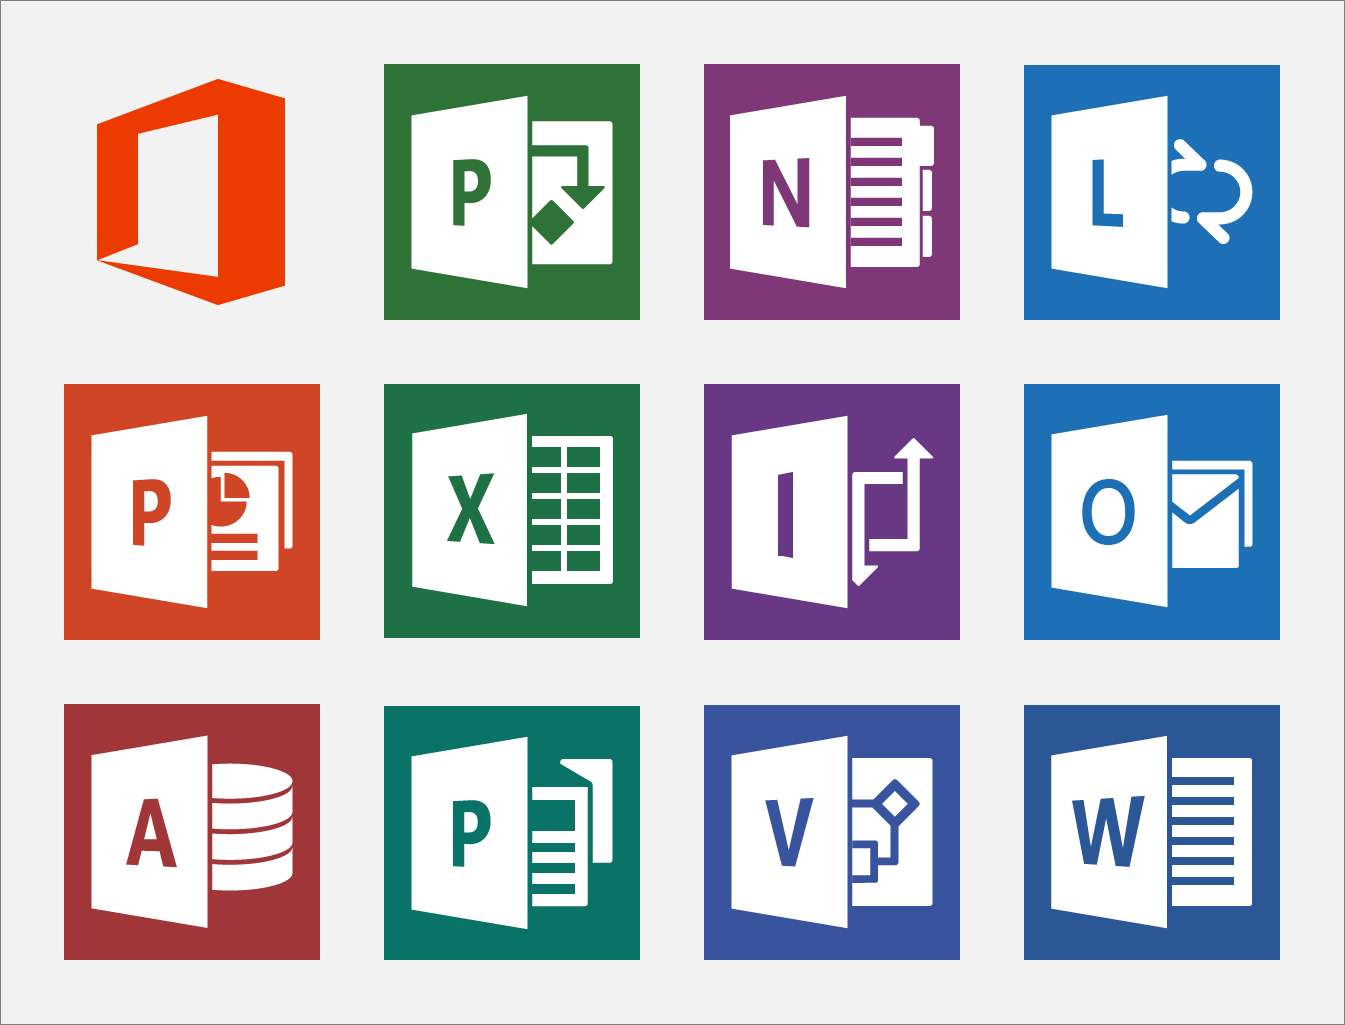 Microsoft Office 2013 Icons By Carlosjj On Deviantart Picto Logiciel Cours Informatique